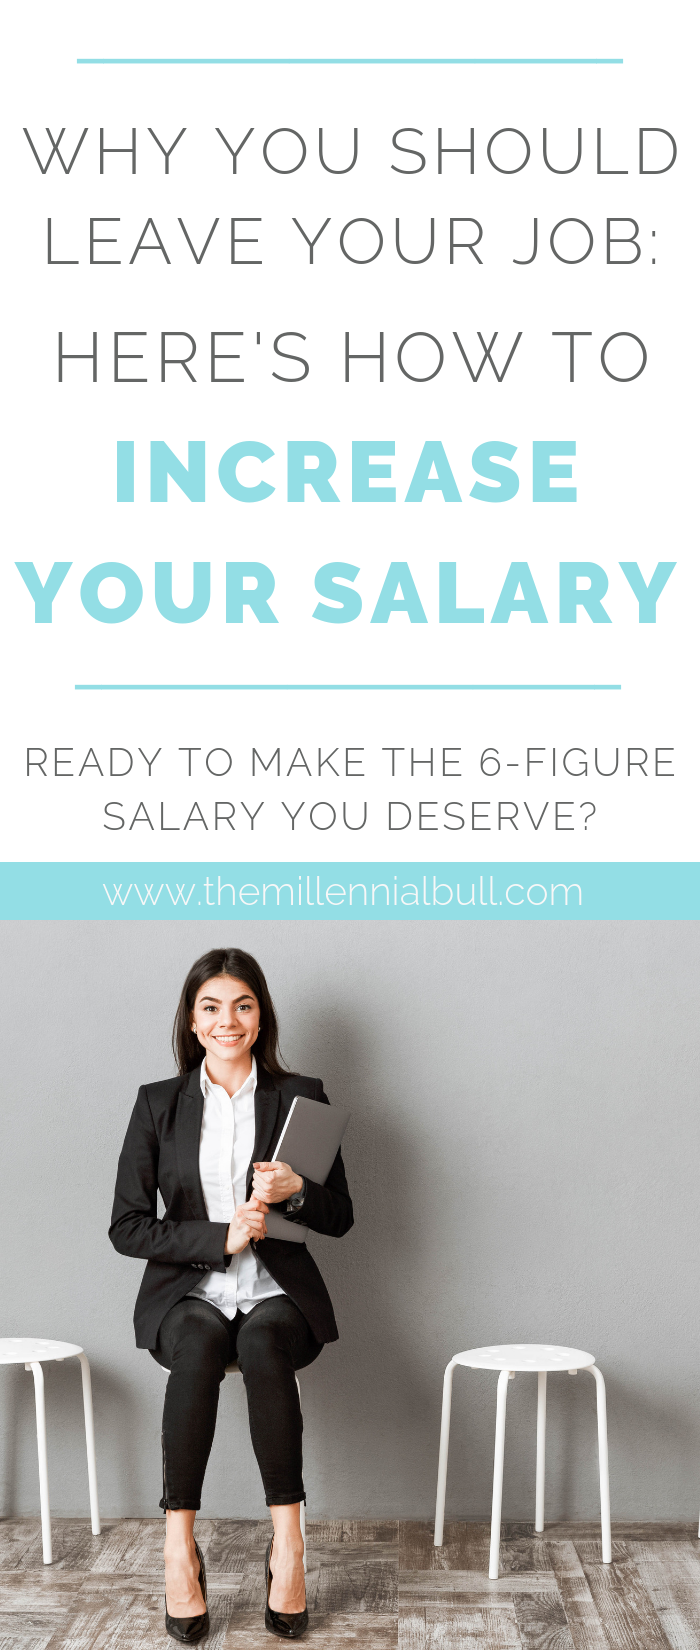 Why You Should Leave Your Job Heres How To Increase Your Salary Ready To Make The 6 Figure Salary You Deserve We All Want To Learn How To Make More